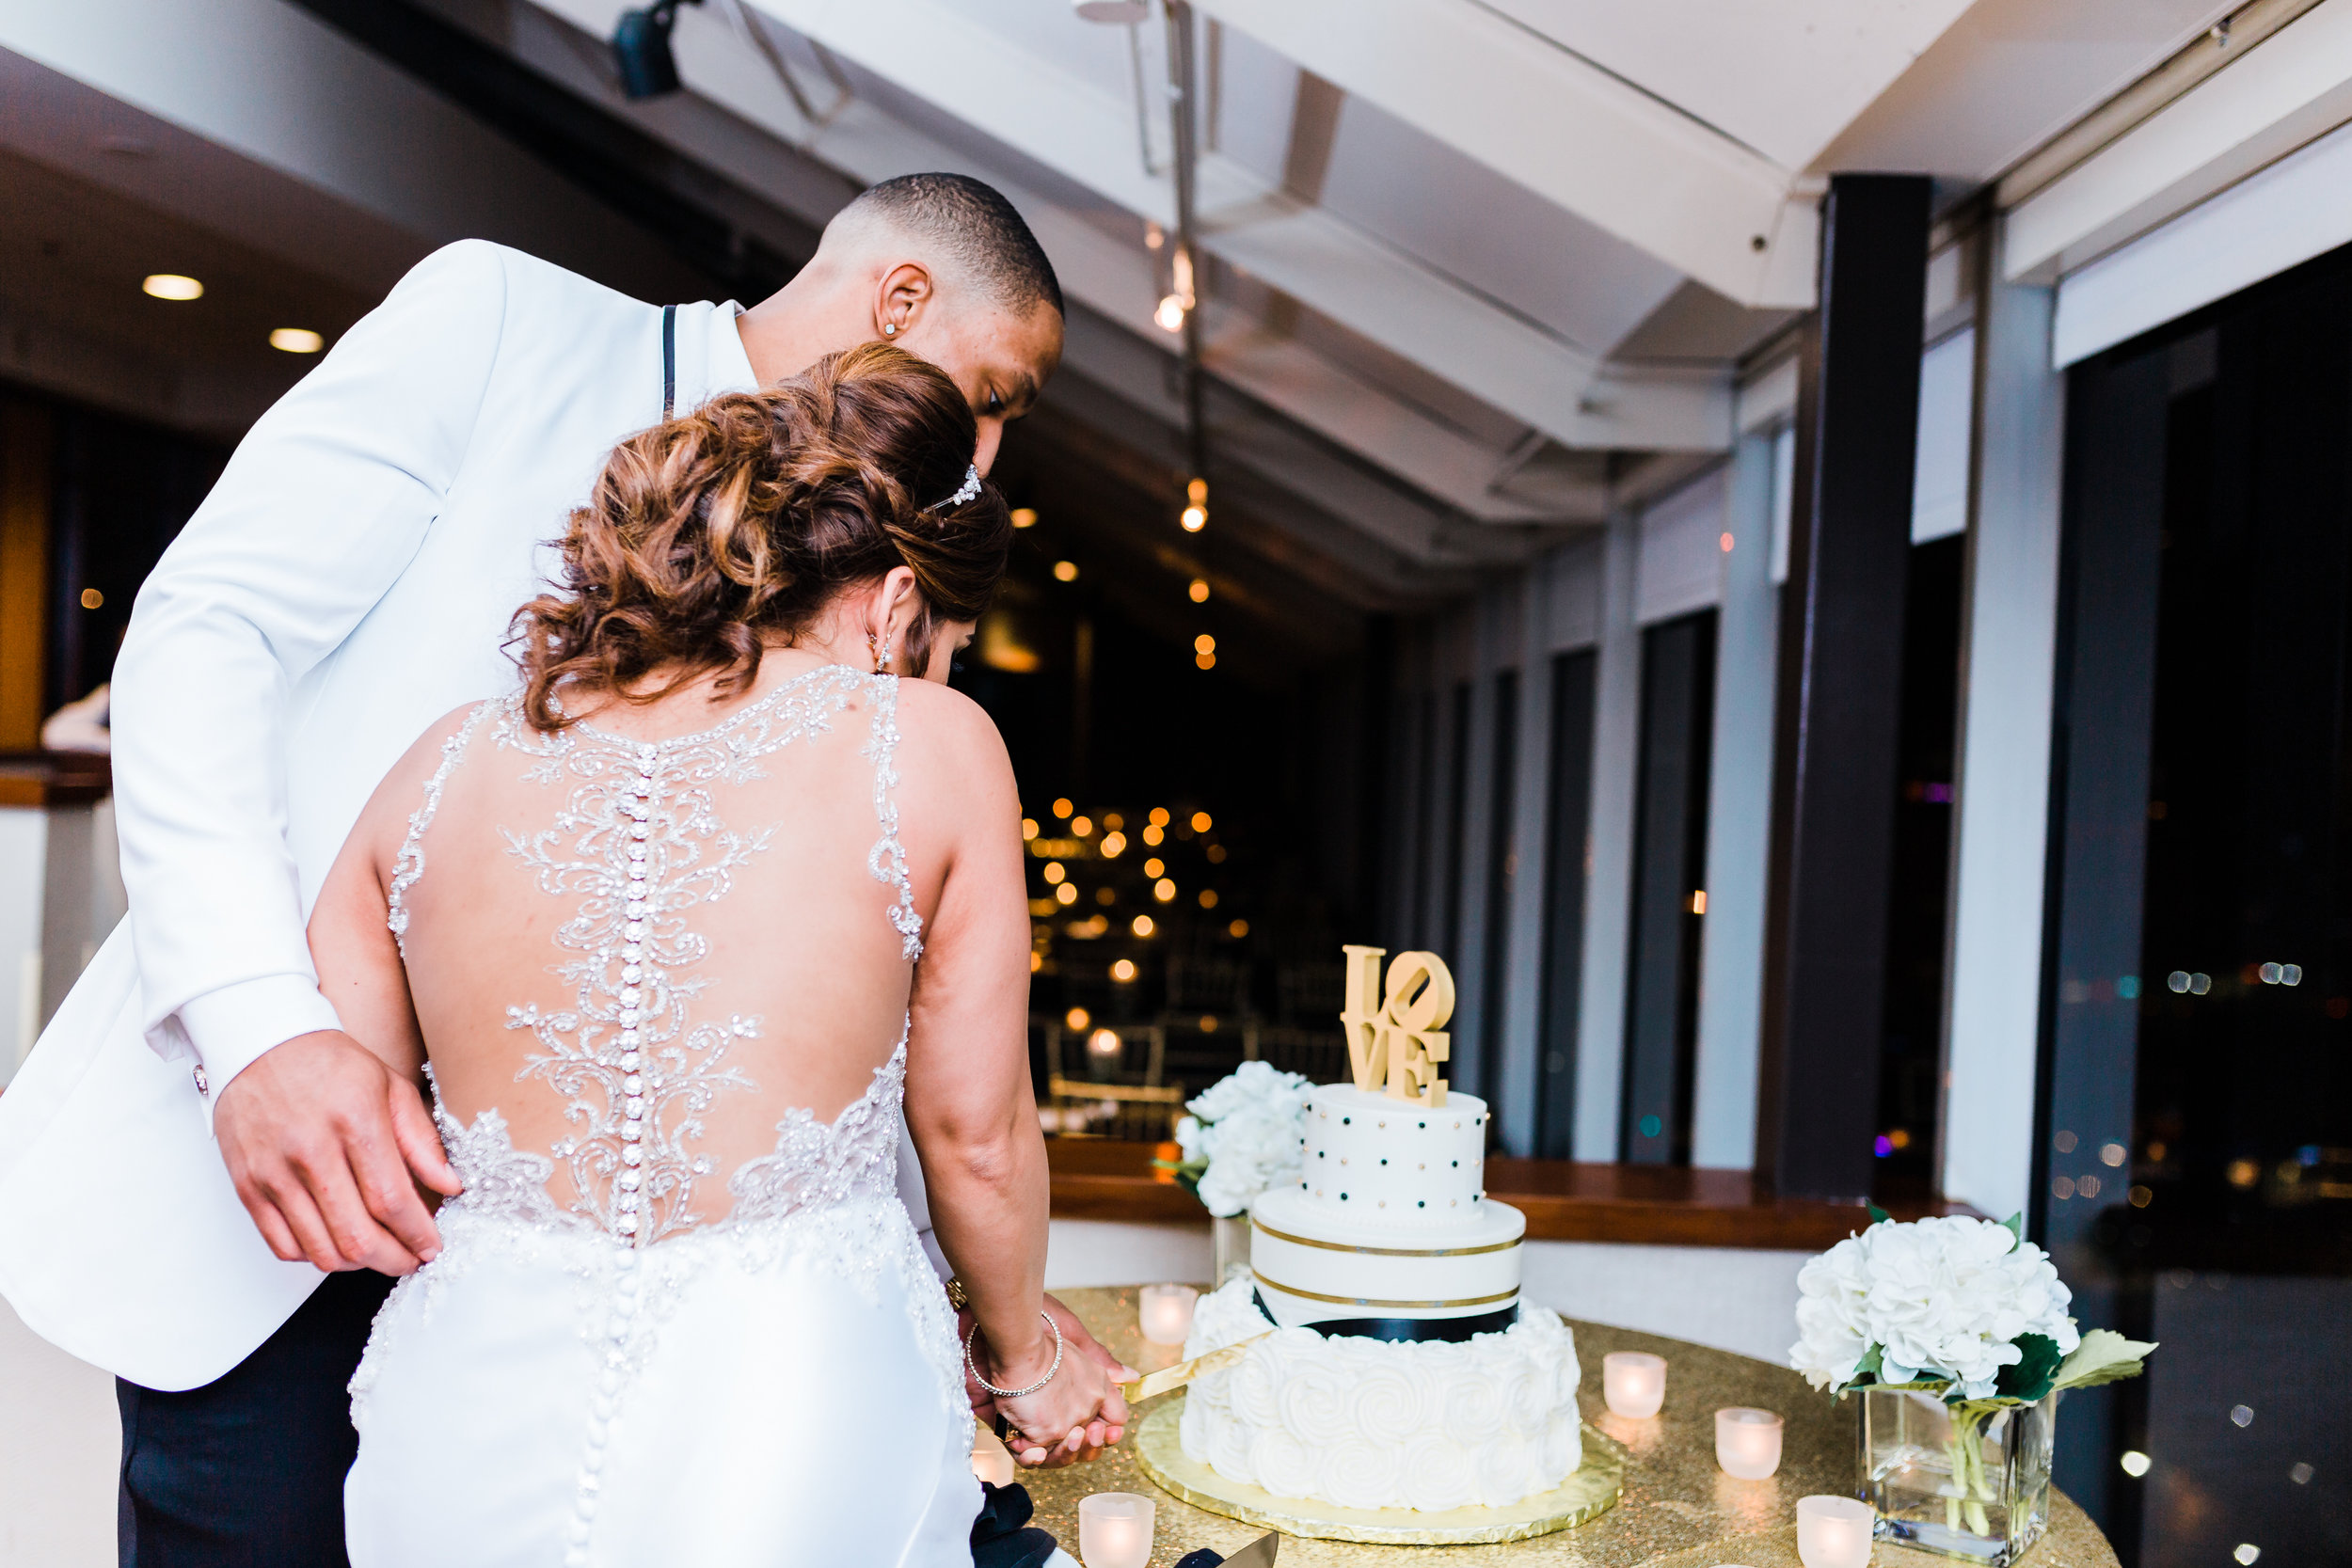 sugar bakers cake gets cut in baltimore maryland